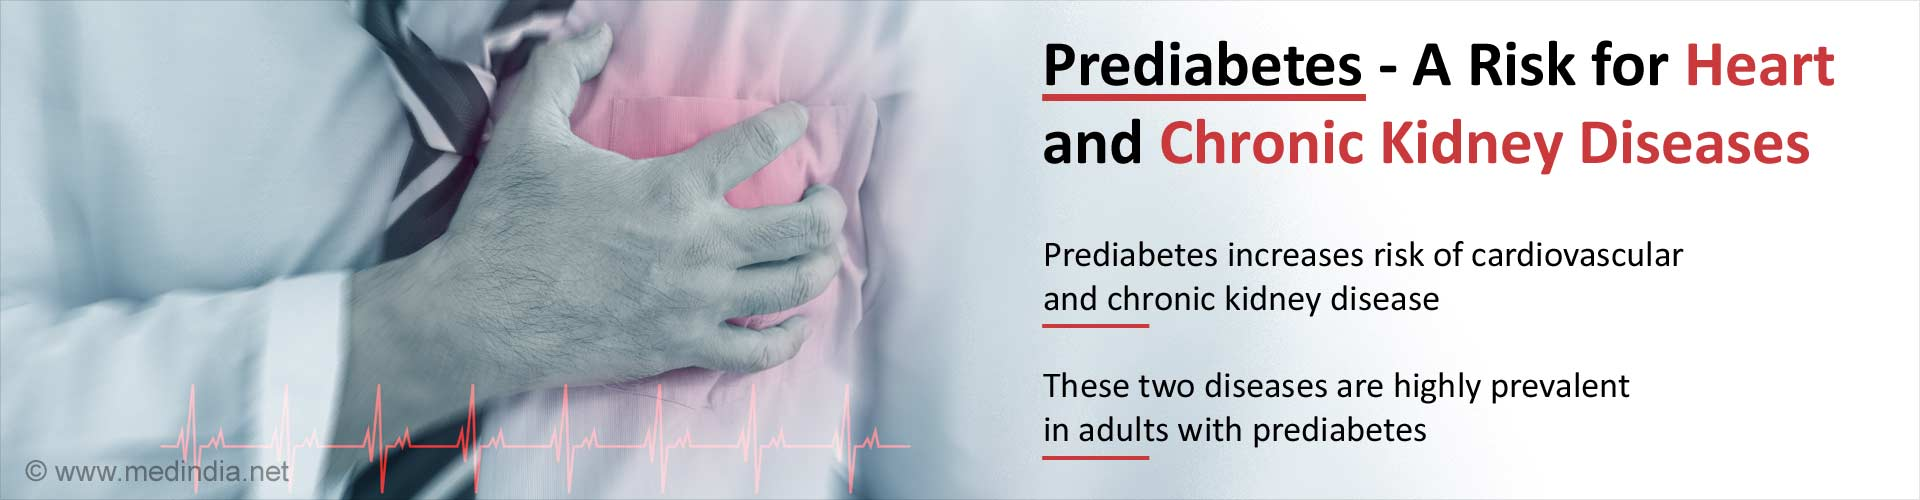 Prediabetes Heightens the Risk for Heart and Chronic Kidney Diseases